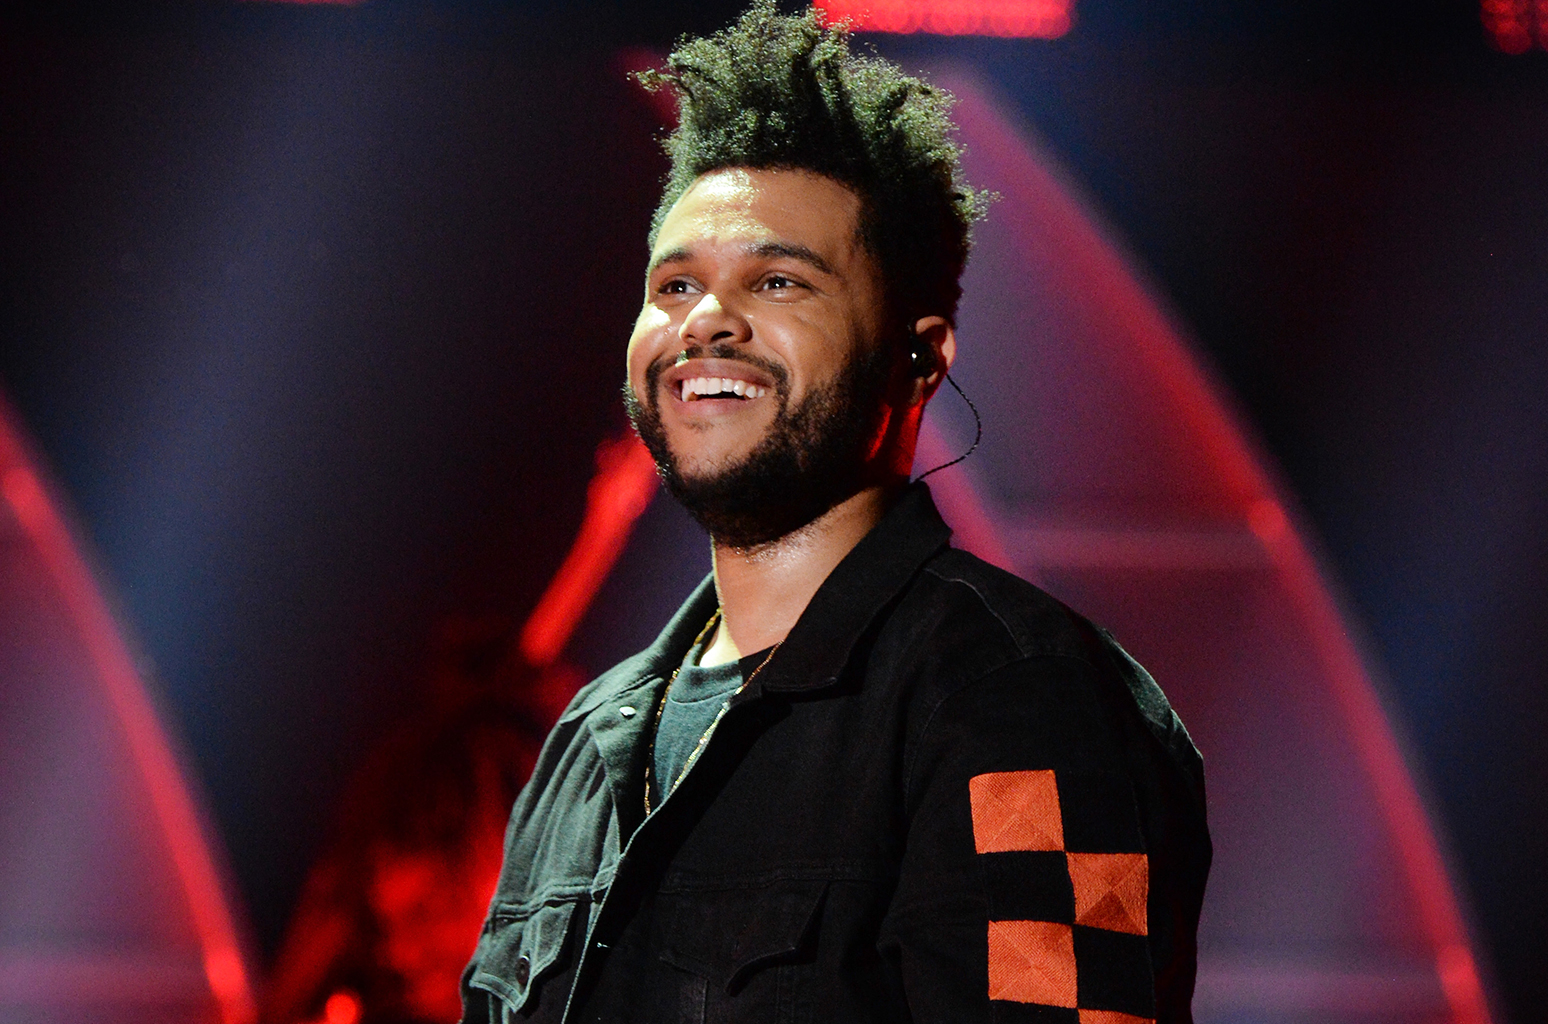 the-weeknd-smile-live-2017-a-billboard-1548